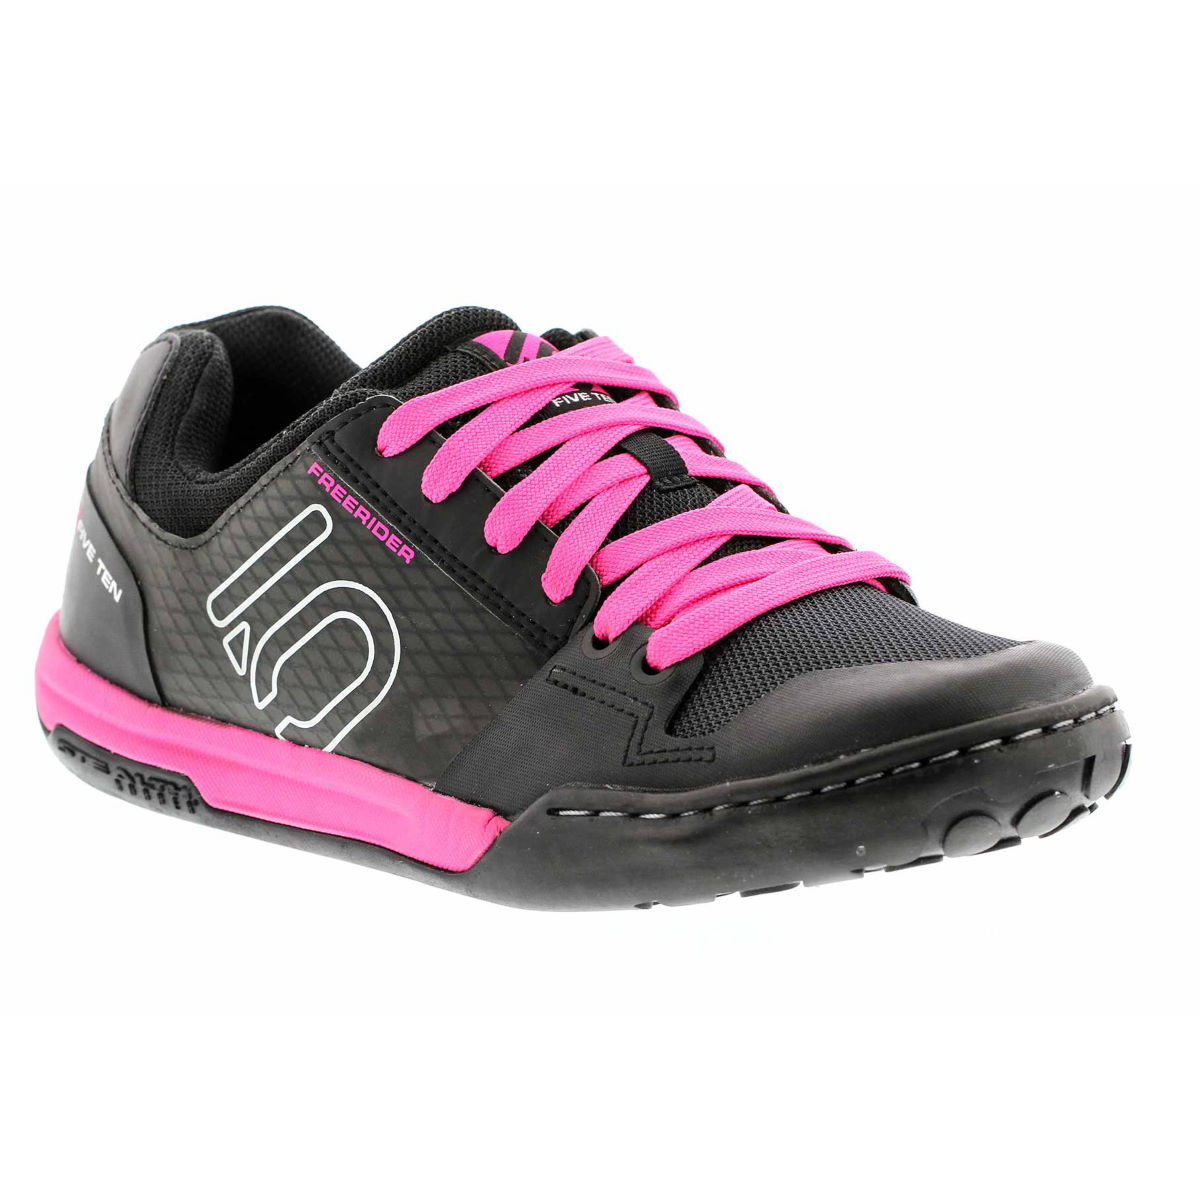 Chaussures VTT Femme Five Ten Freerider Contact - EU 40 Split Pink